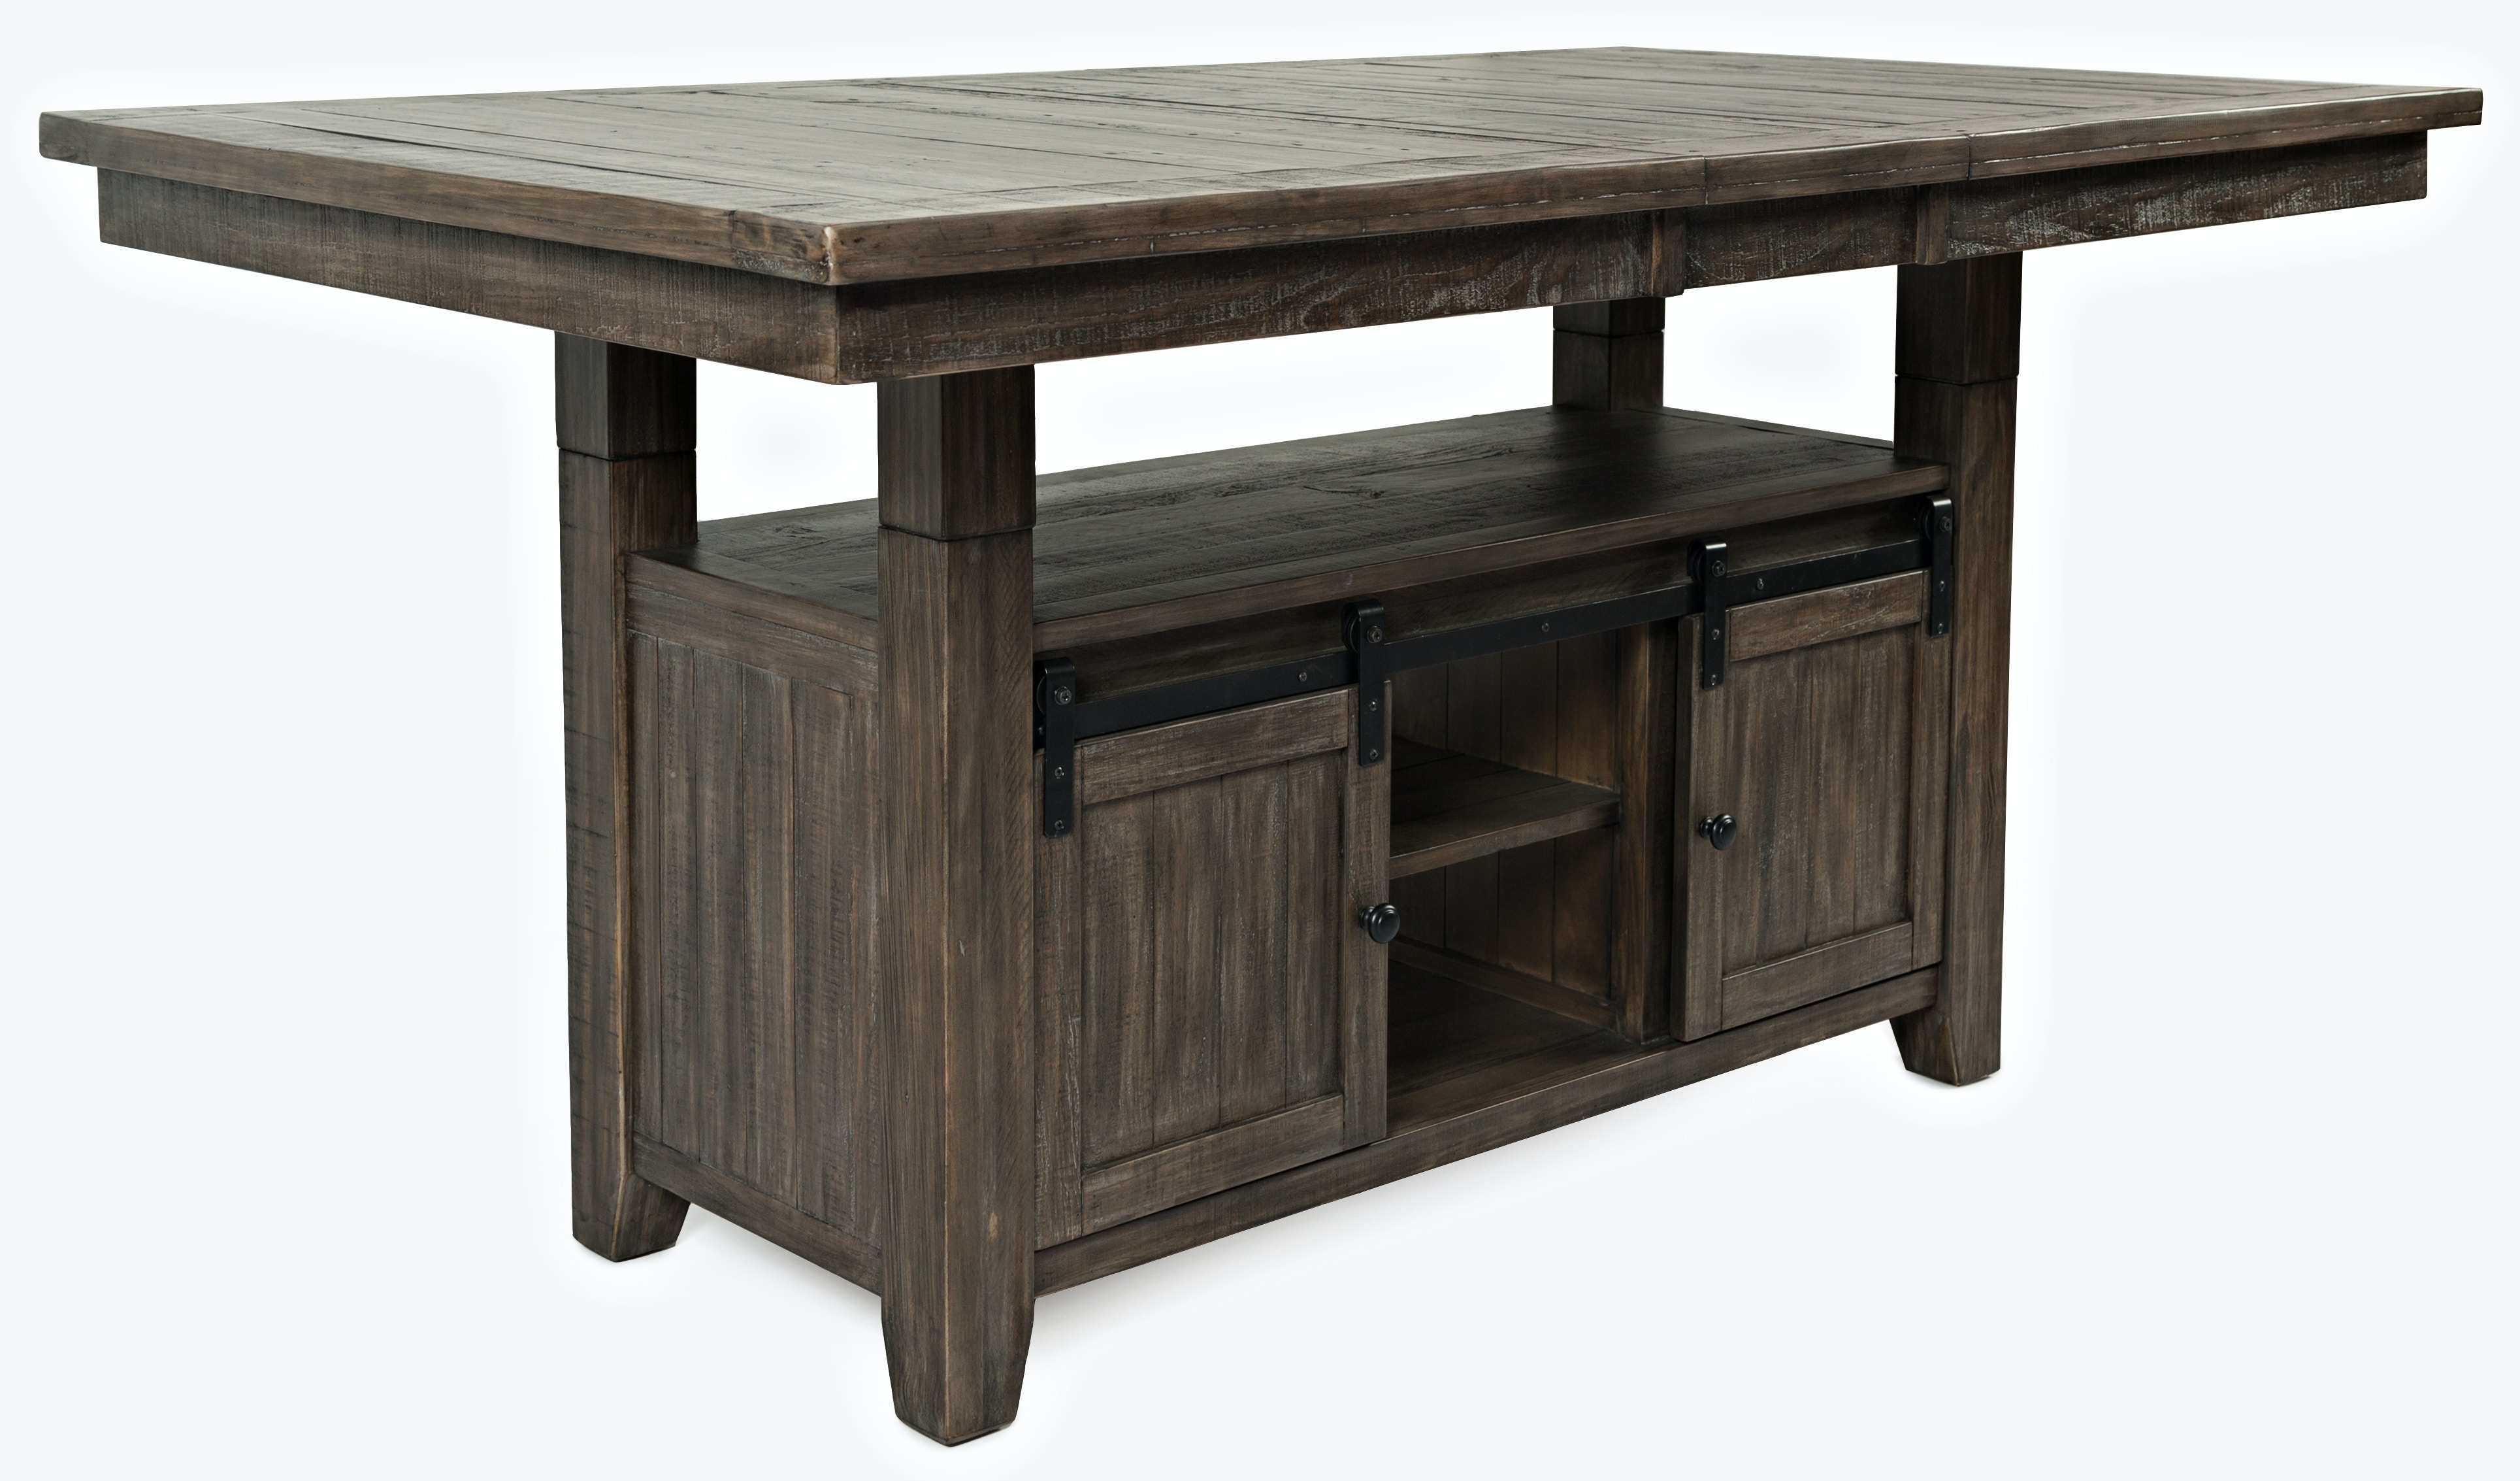 Merveilleux Ginger High Low Dining Table   BARNWOOD